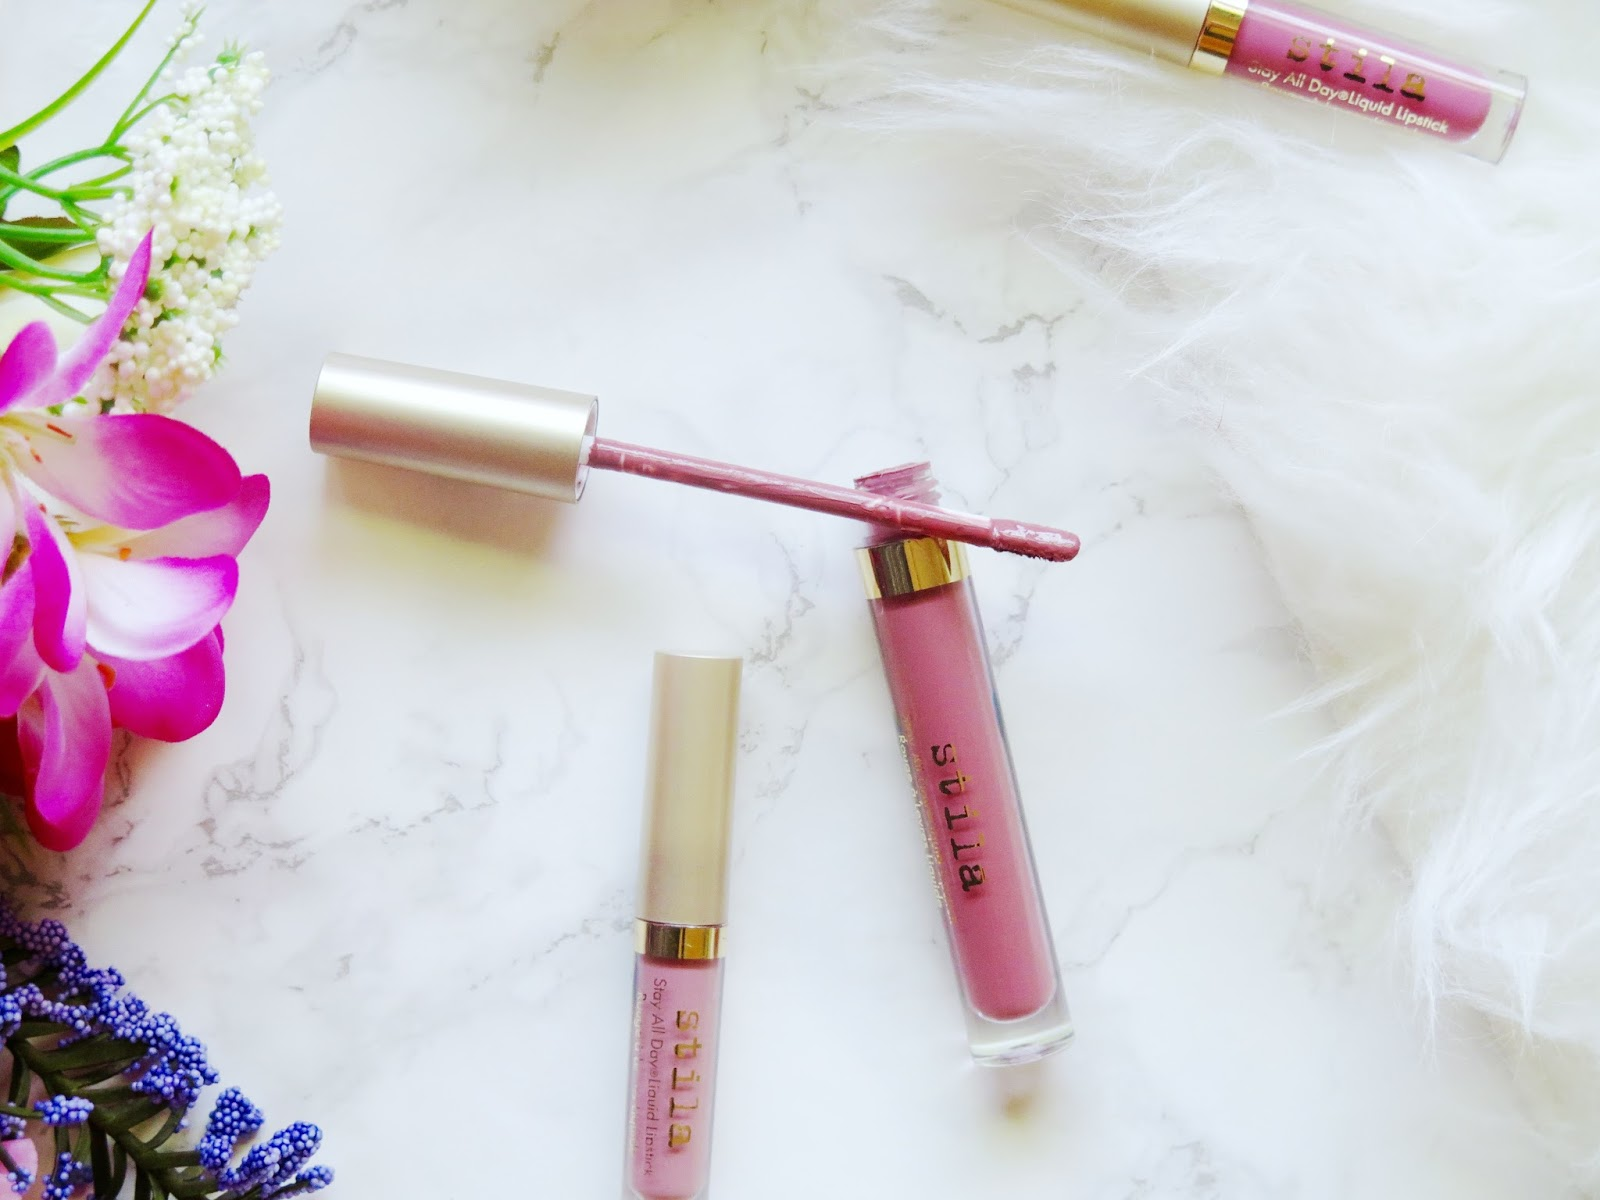 The Best Liquid Lipsticks | Stila Stay All Day Liquid Lipstick in Firenze | VIB Rouge Exclusive | Review & Swatches